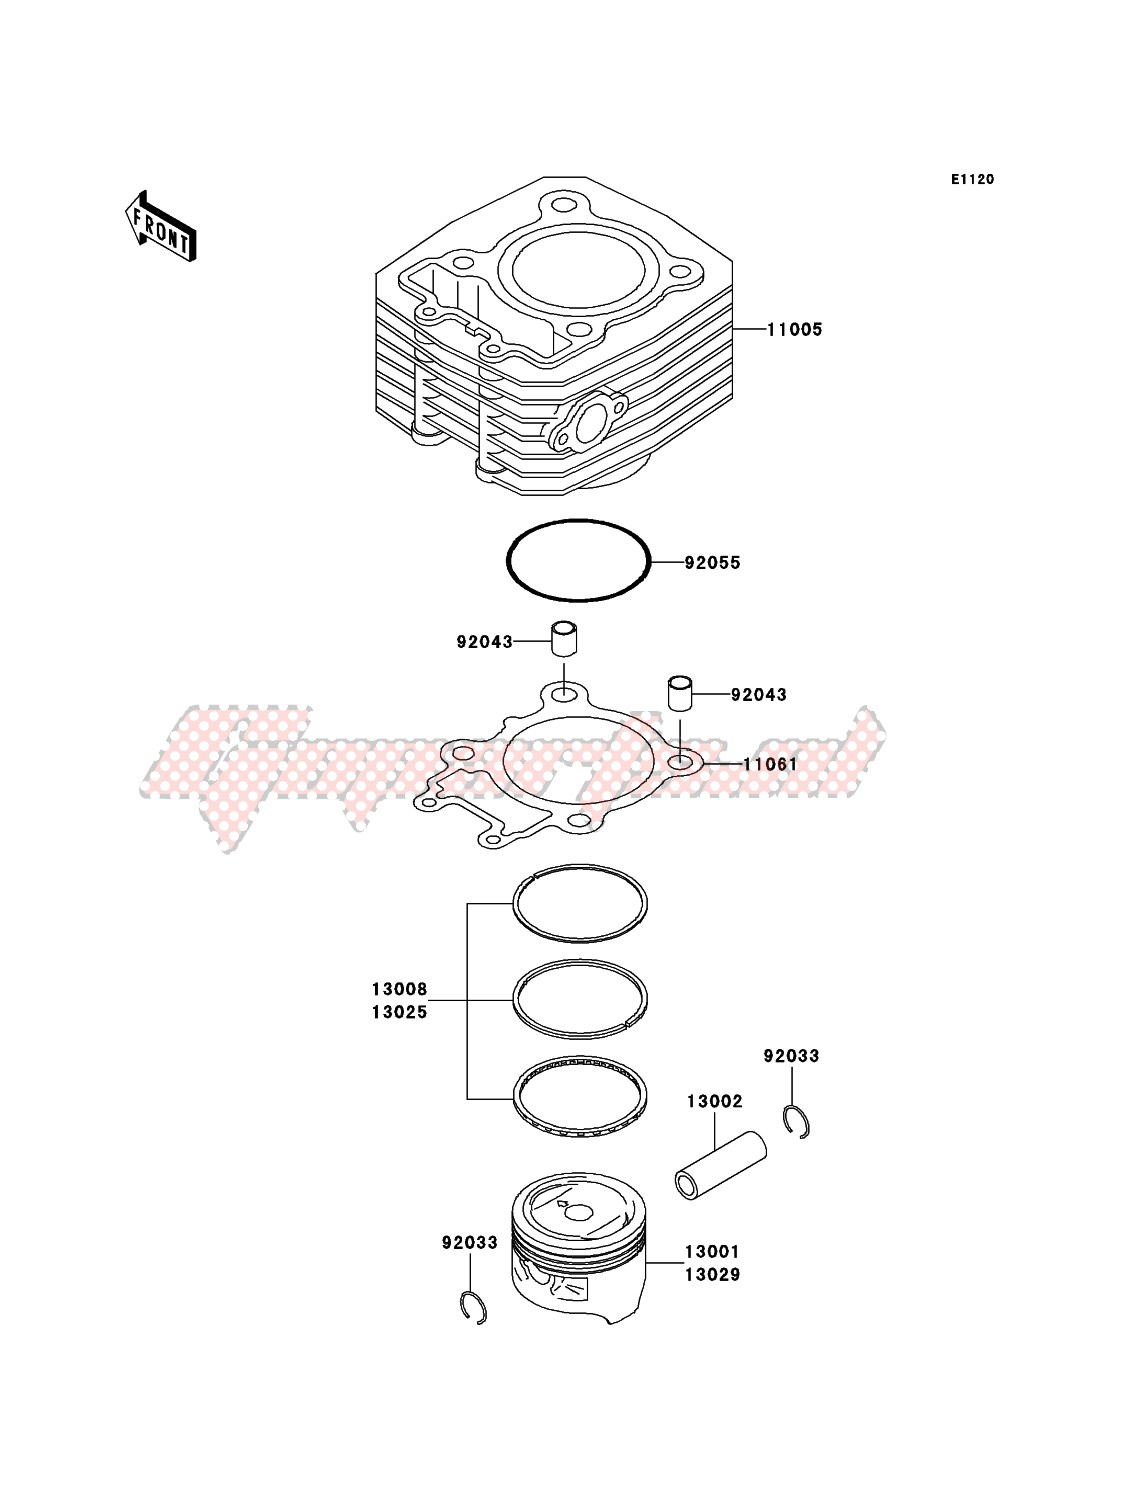 Engine-Cylinder/Piston(s)